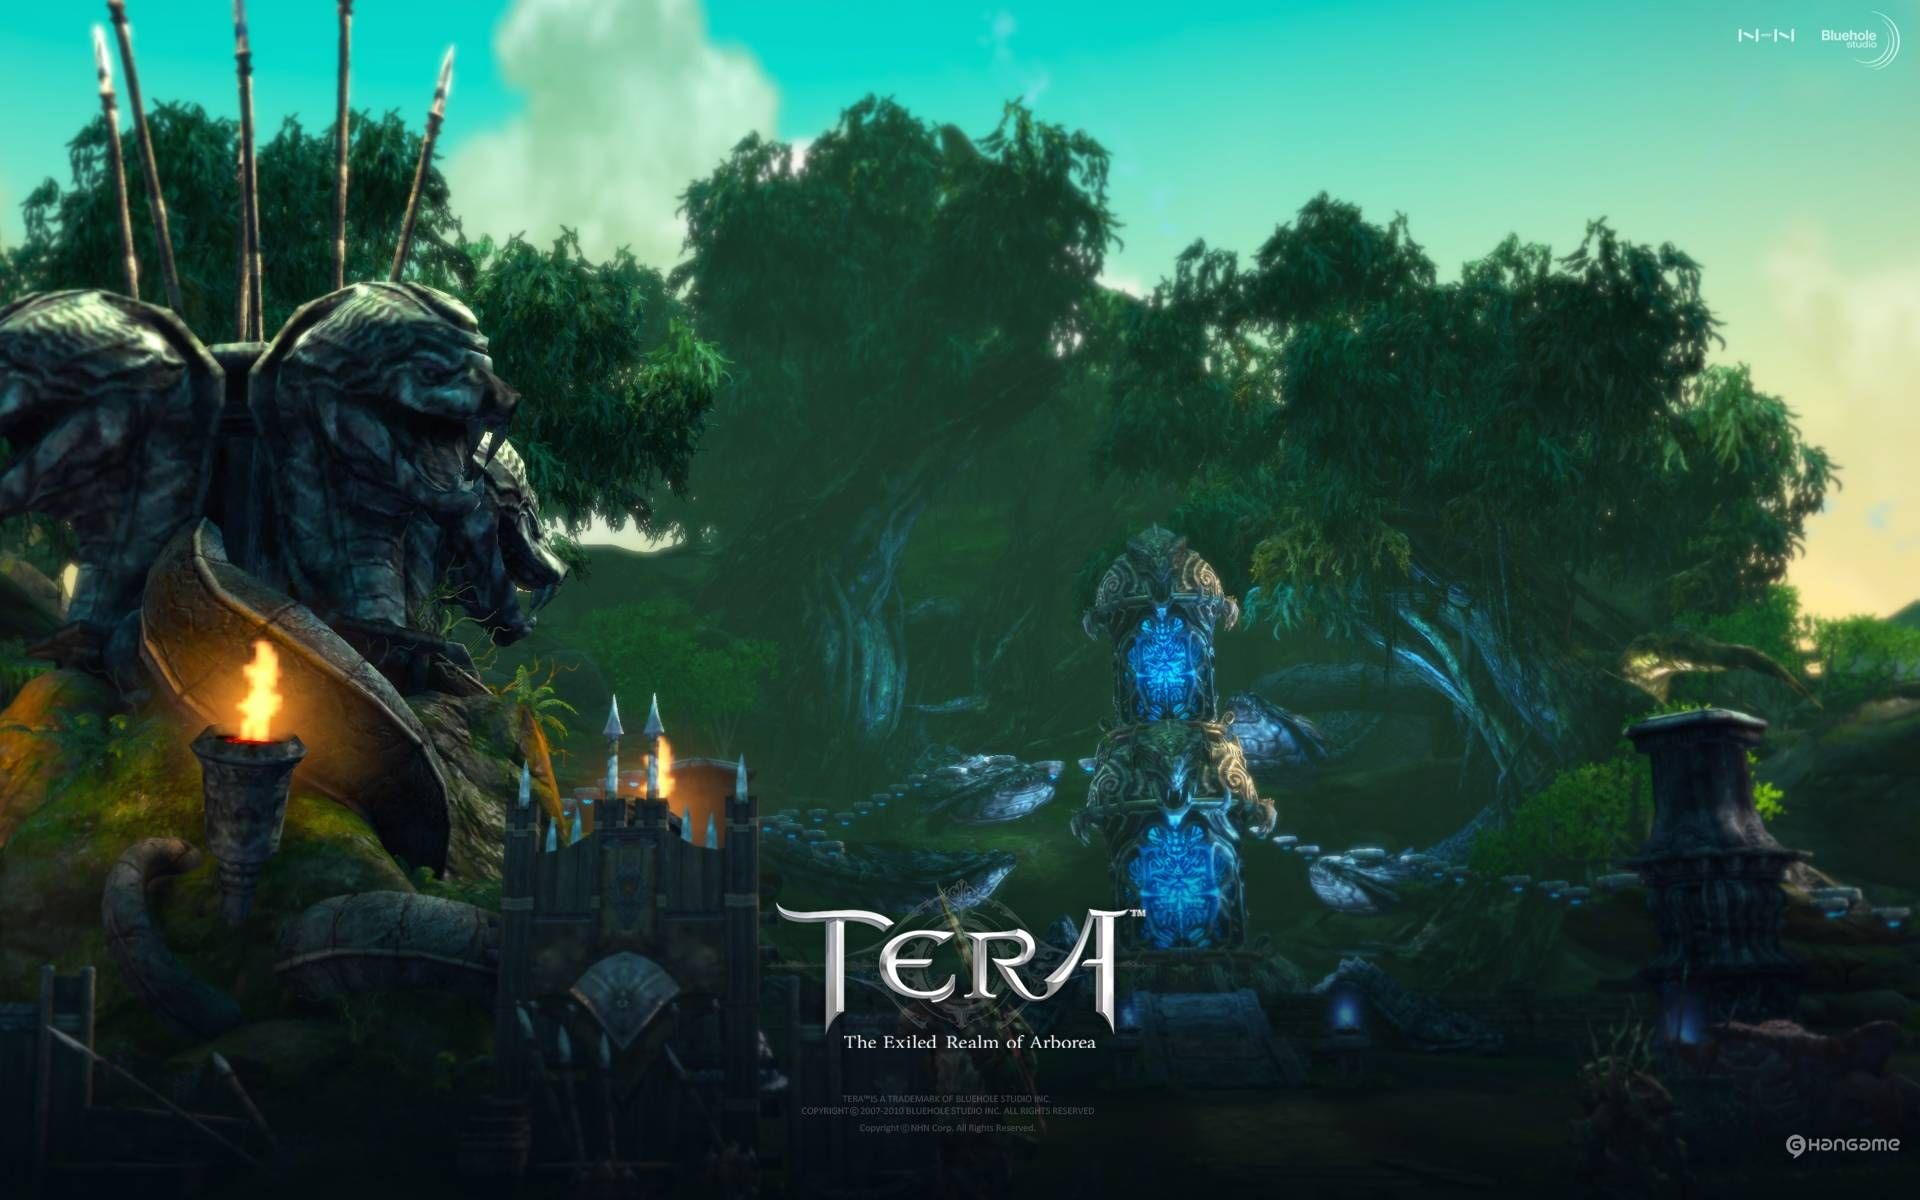 Tera Game Hd Wallpaper 02 Avance 10wallpapercom